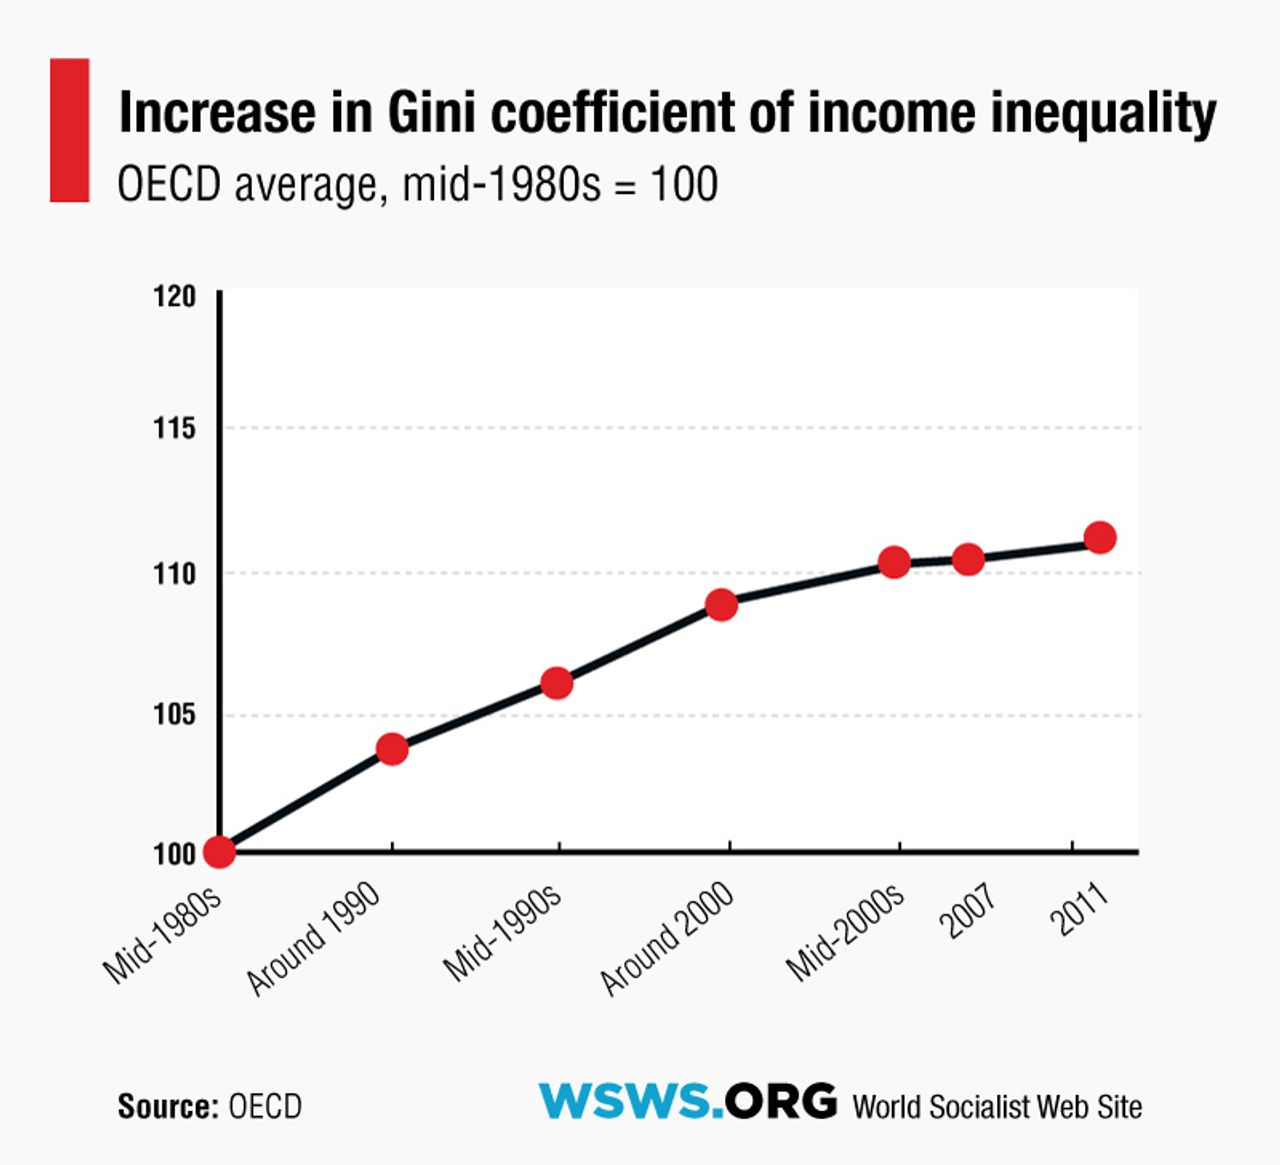 Increase in inequality